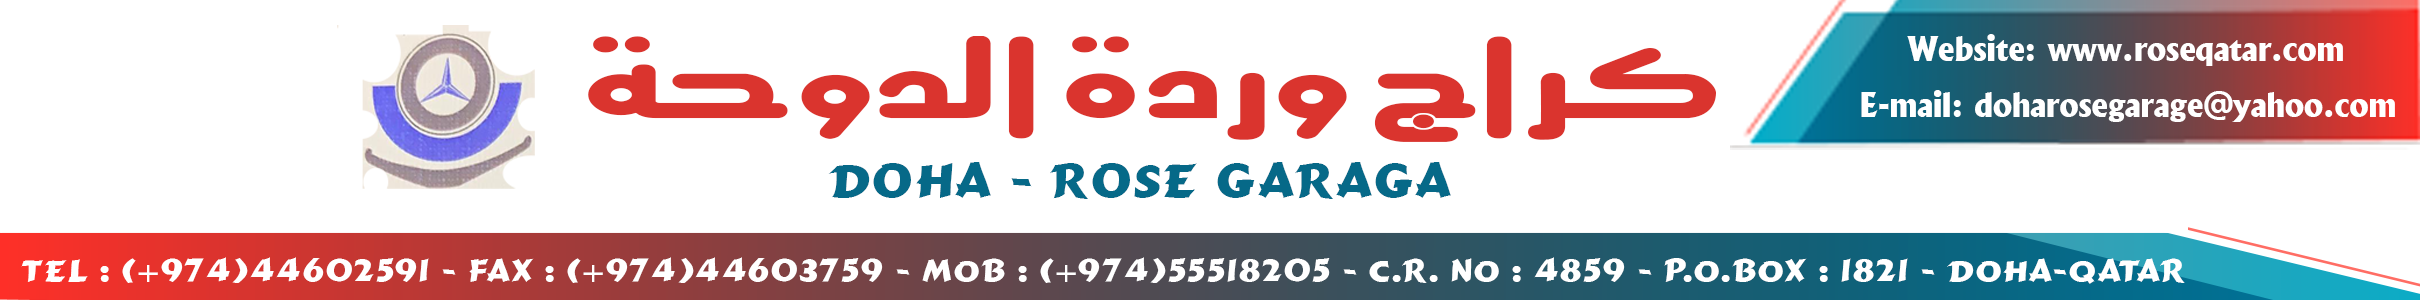 DOHA ROSE GARAGE